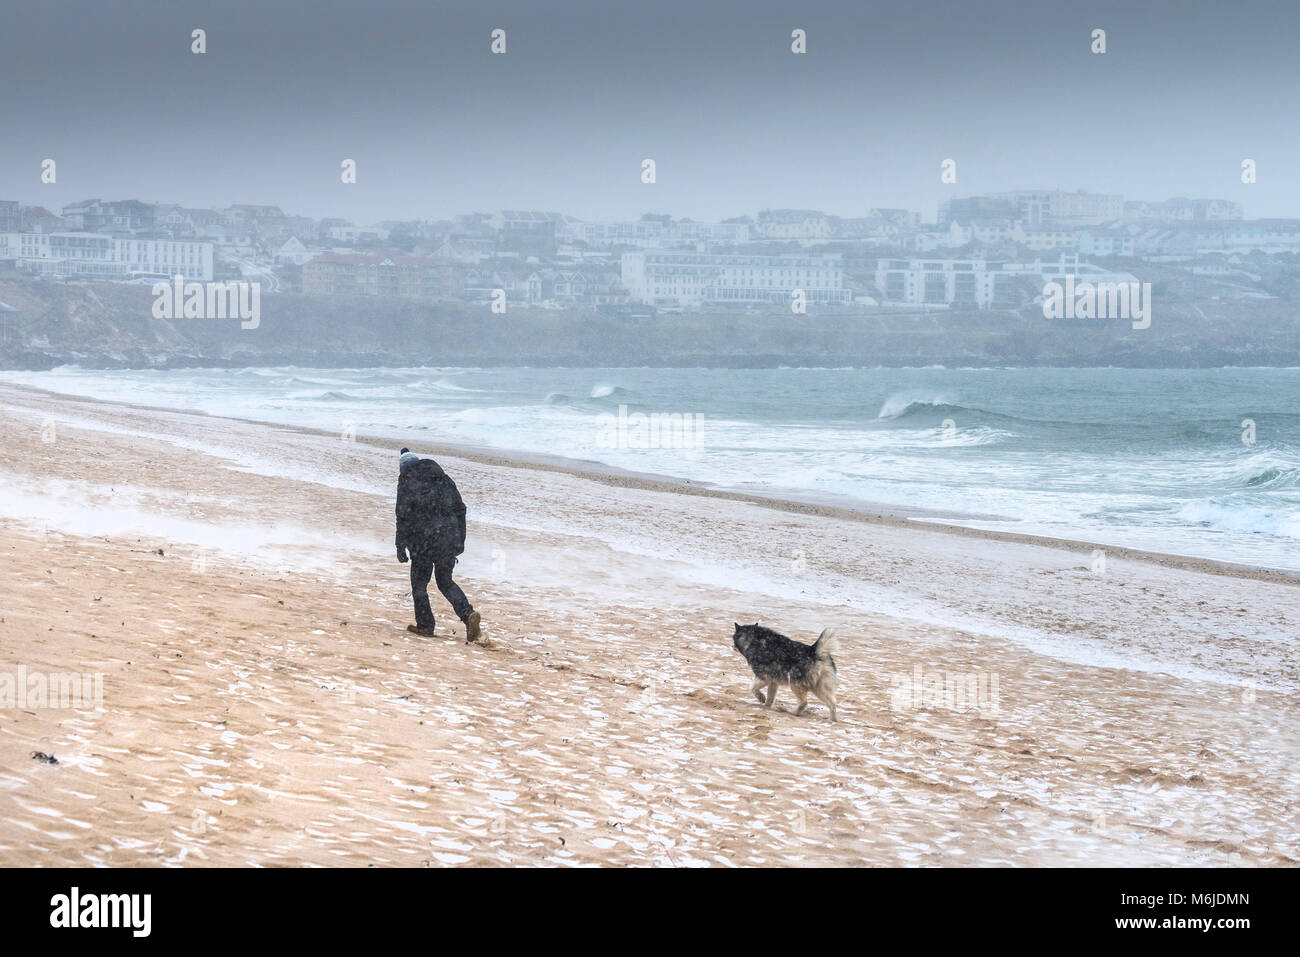 Snow falling as a man walks with his dog across Fistral beach in Newquay Cornwall. - Stock Image